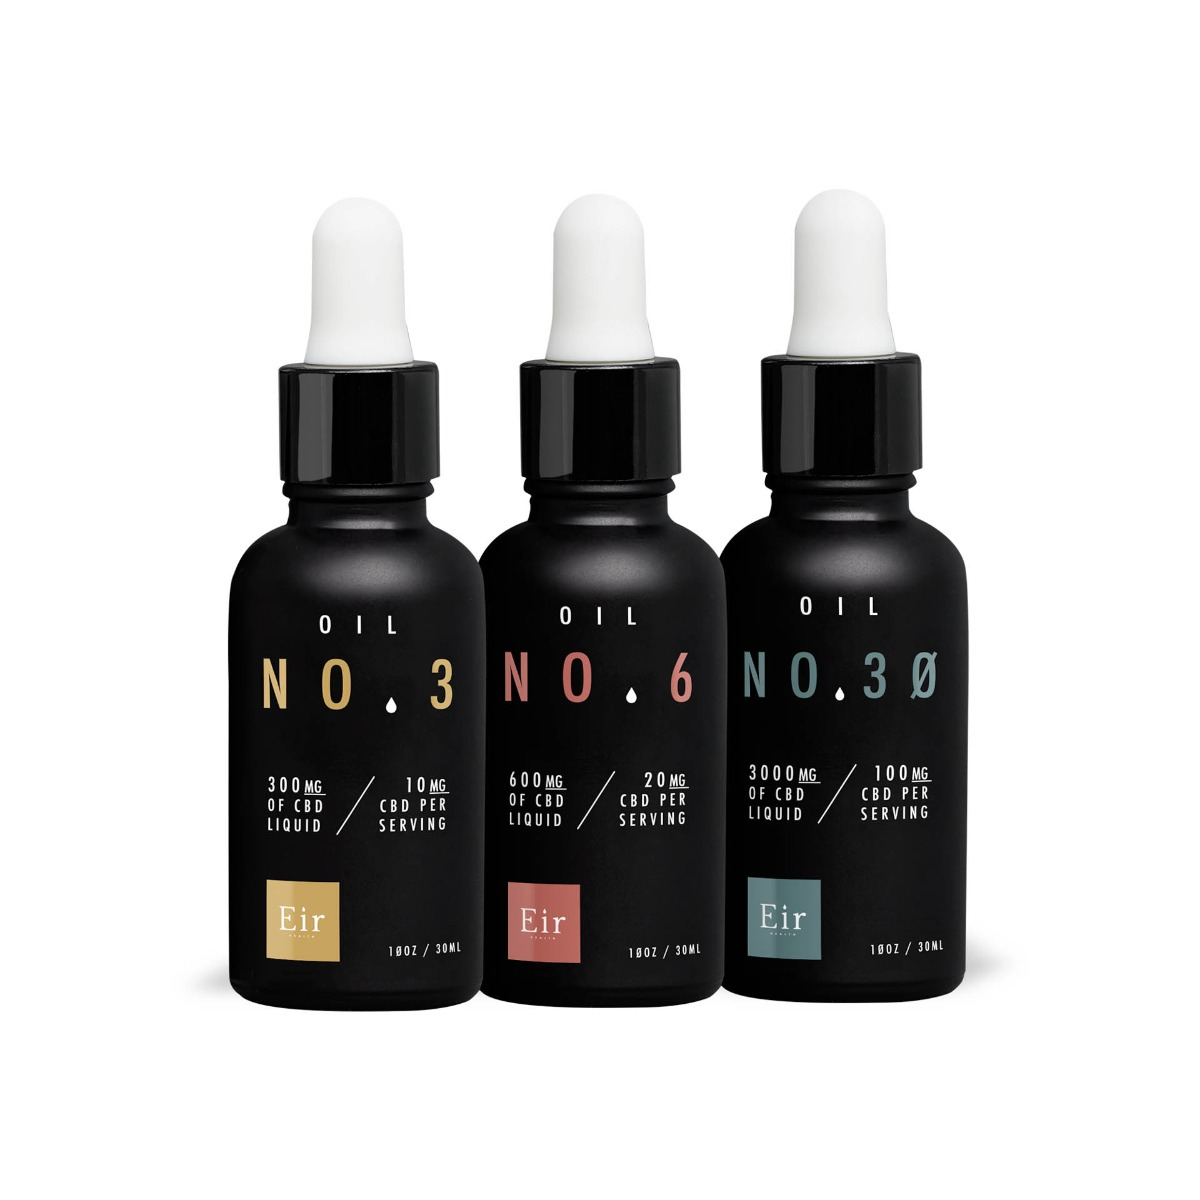 Full Spectrum CBD Oils available in all US states